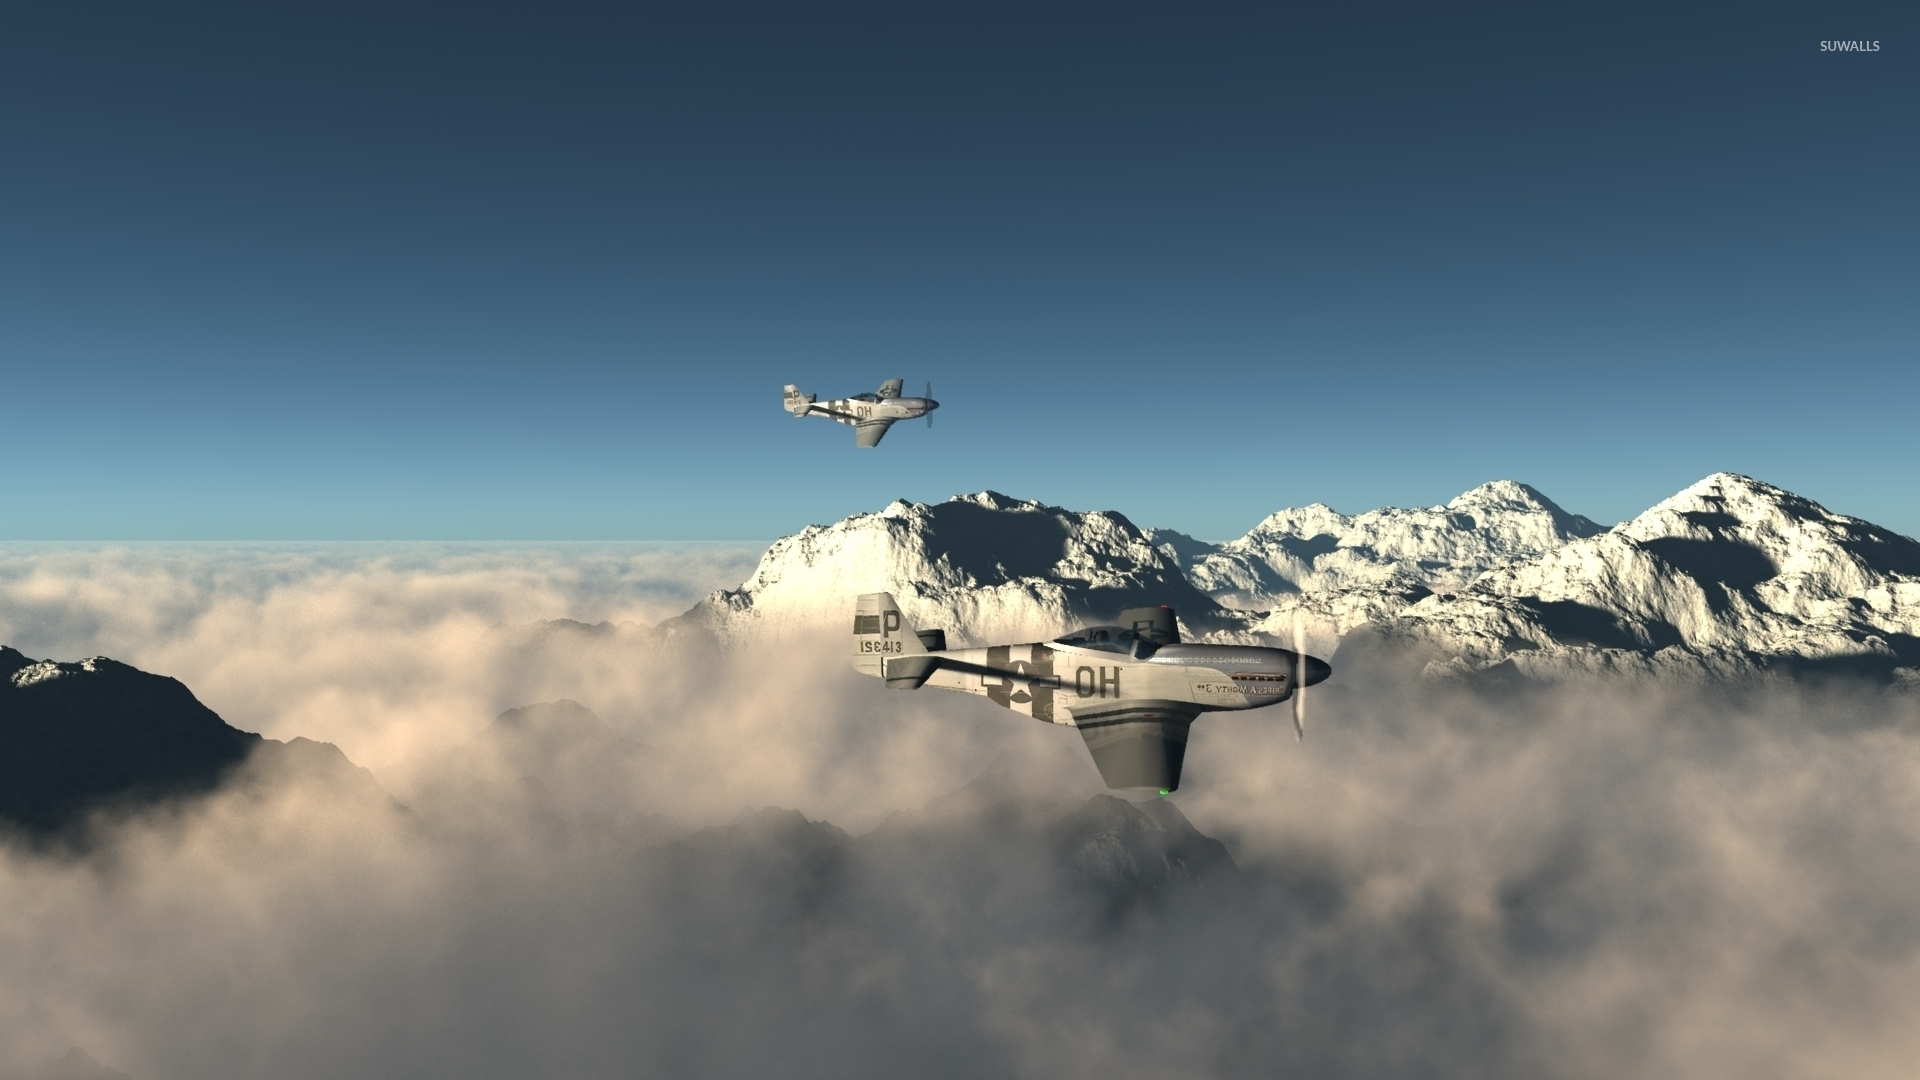 North American P 51 Mustang Above The Foggy Mountain Peaks